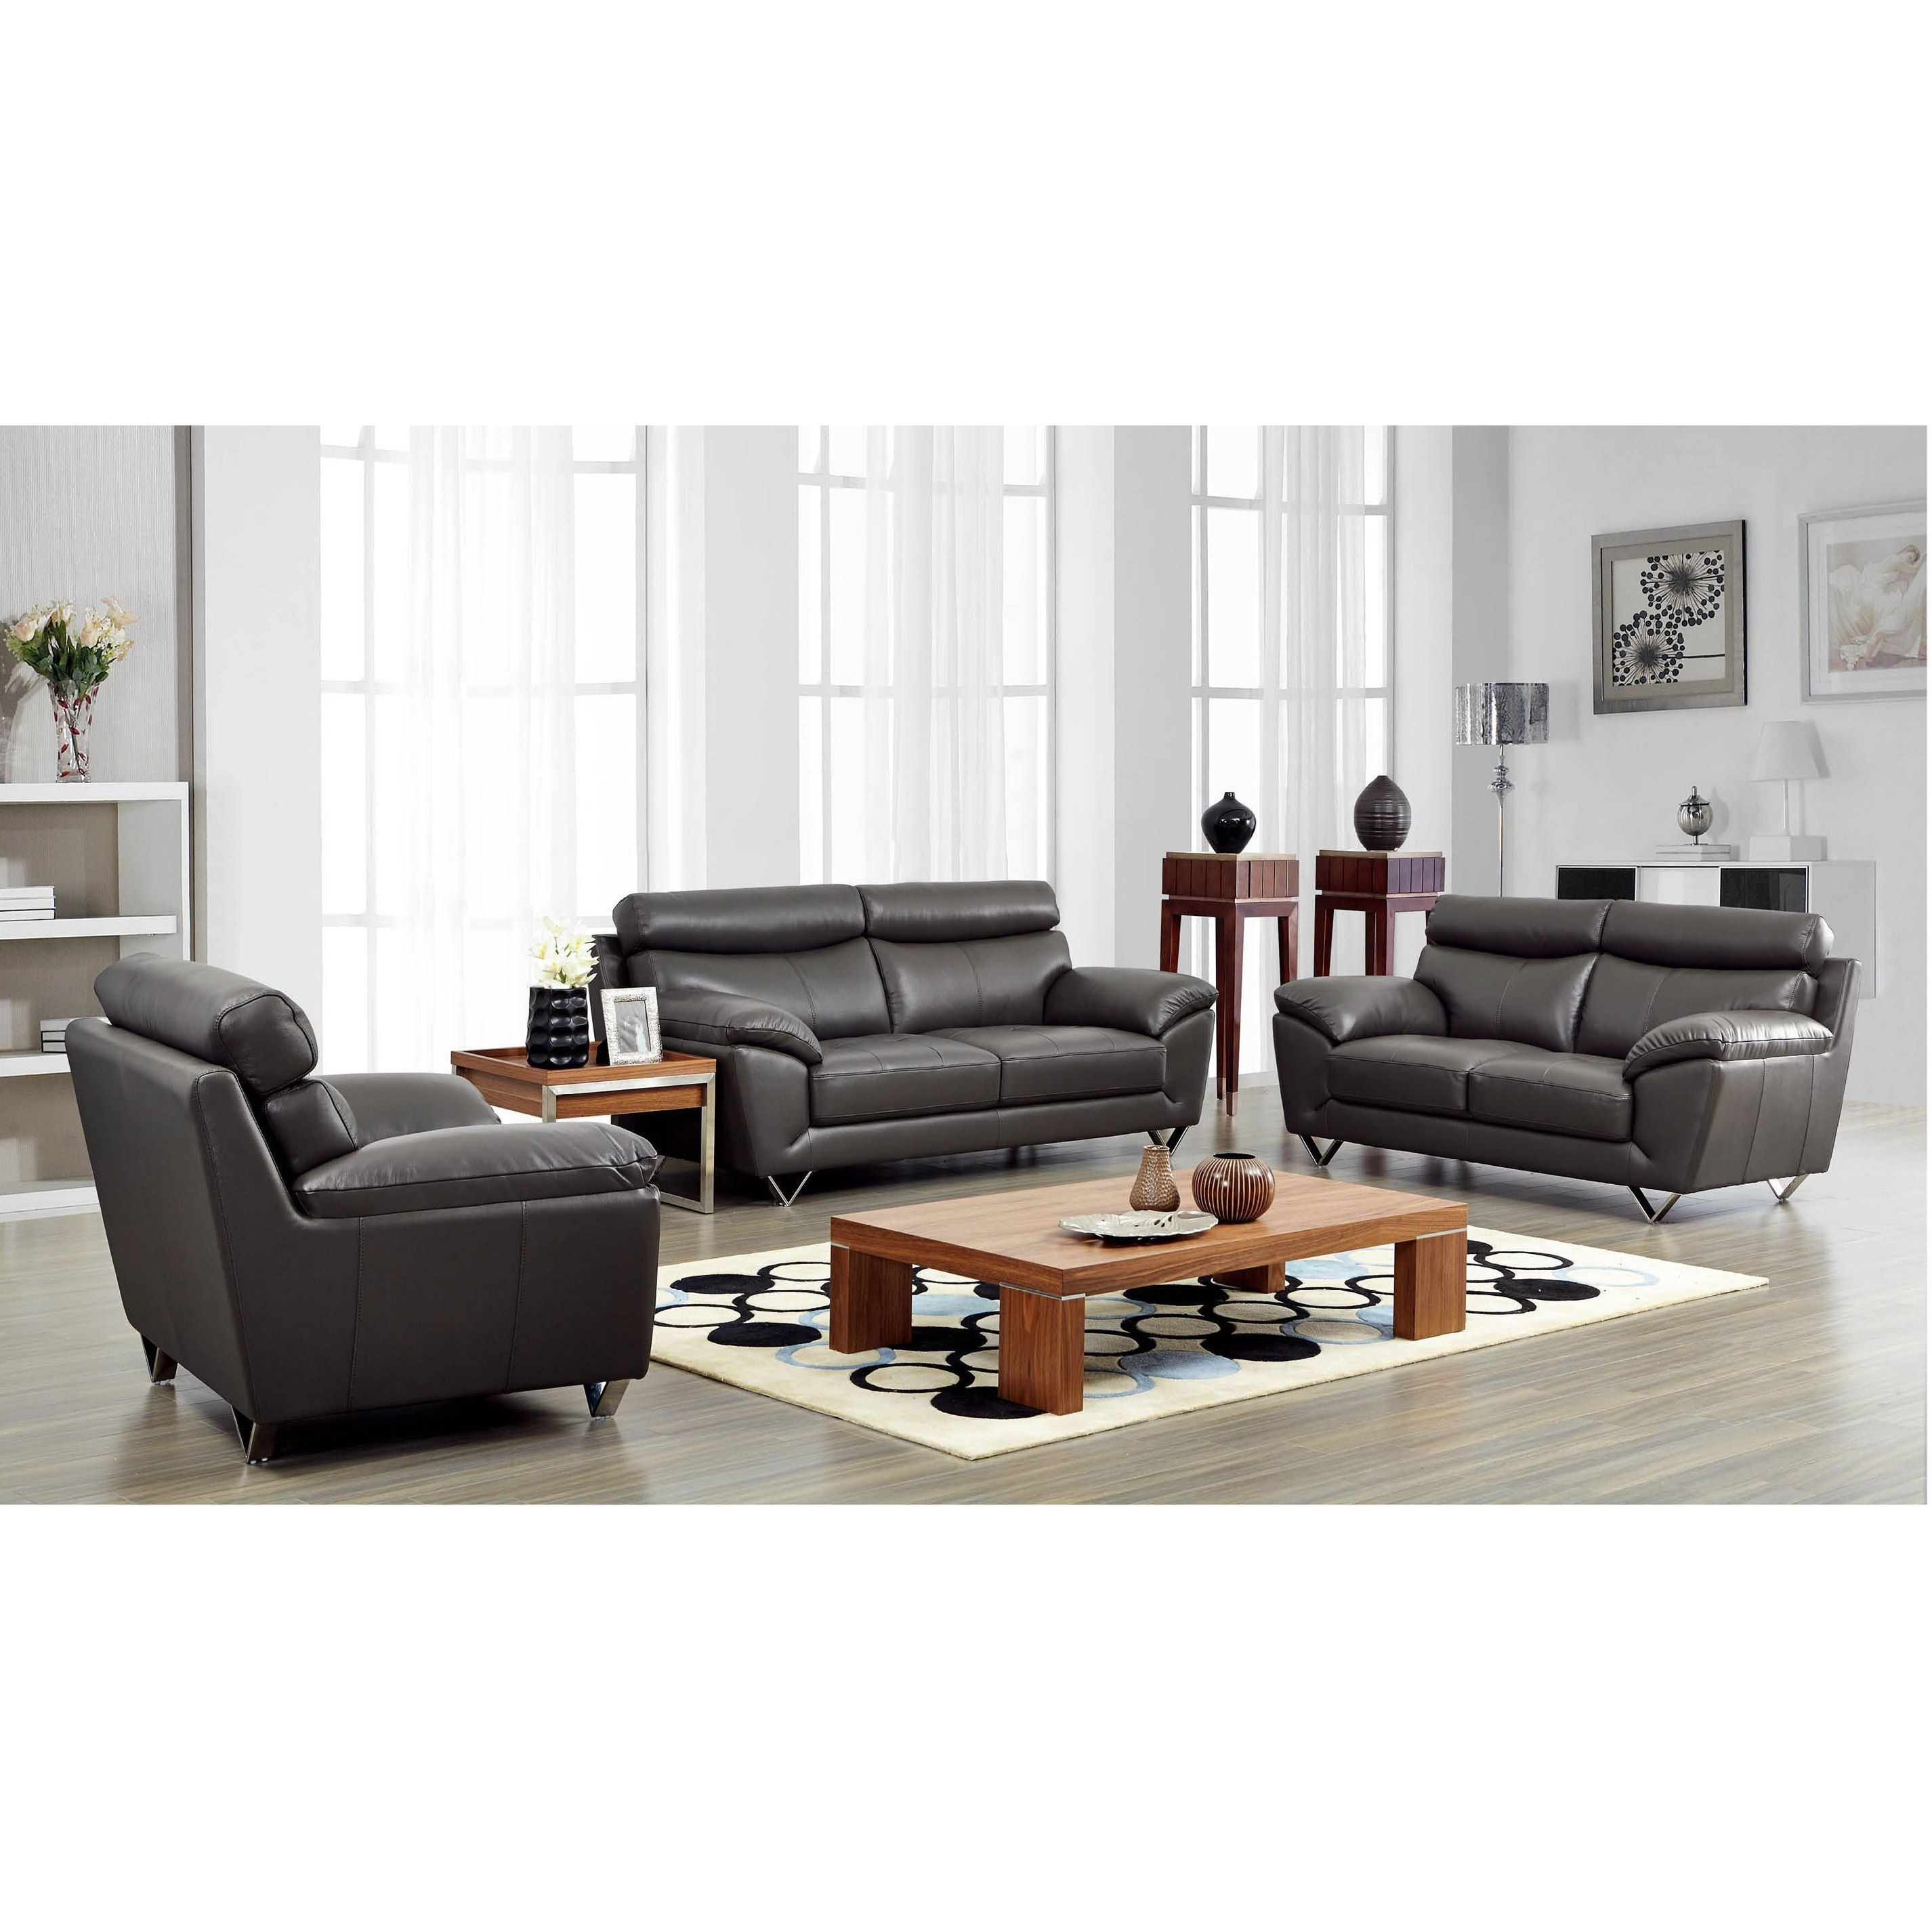 Luca Home Grey Sofa, Loveseat and Chair Set (Grey Sofa, Loveseat and ...